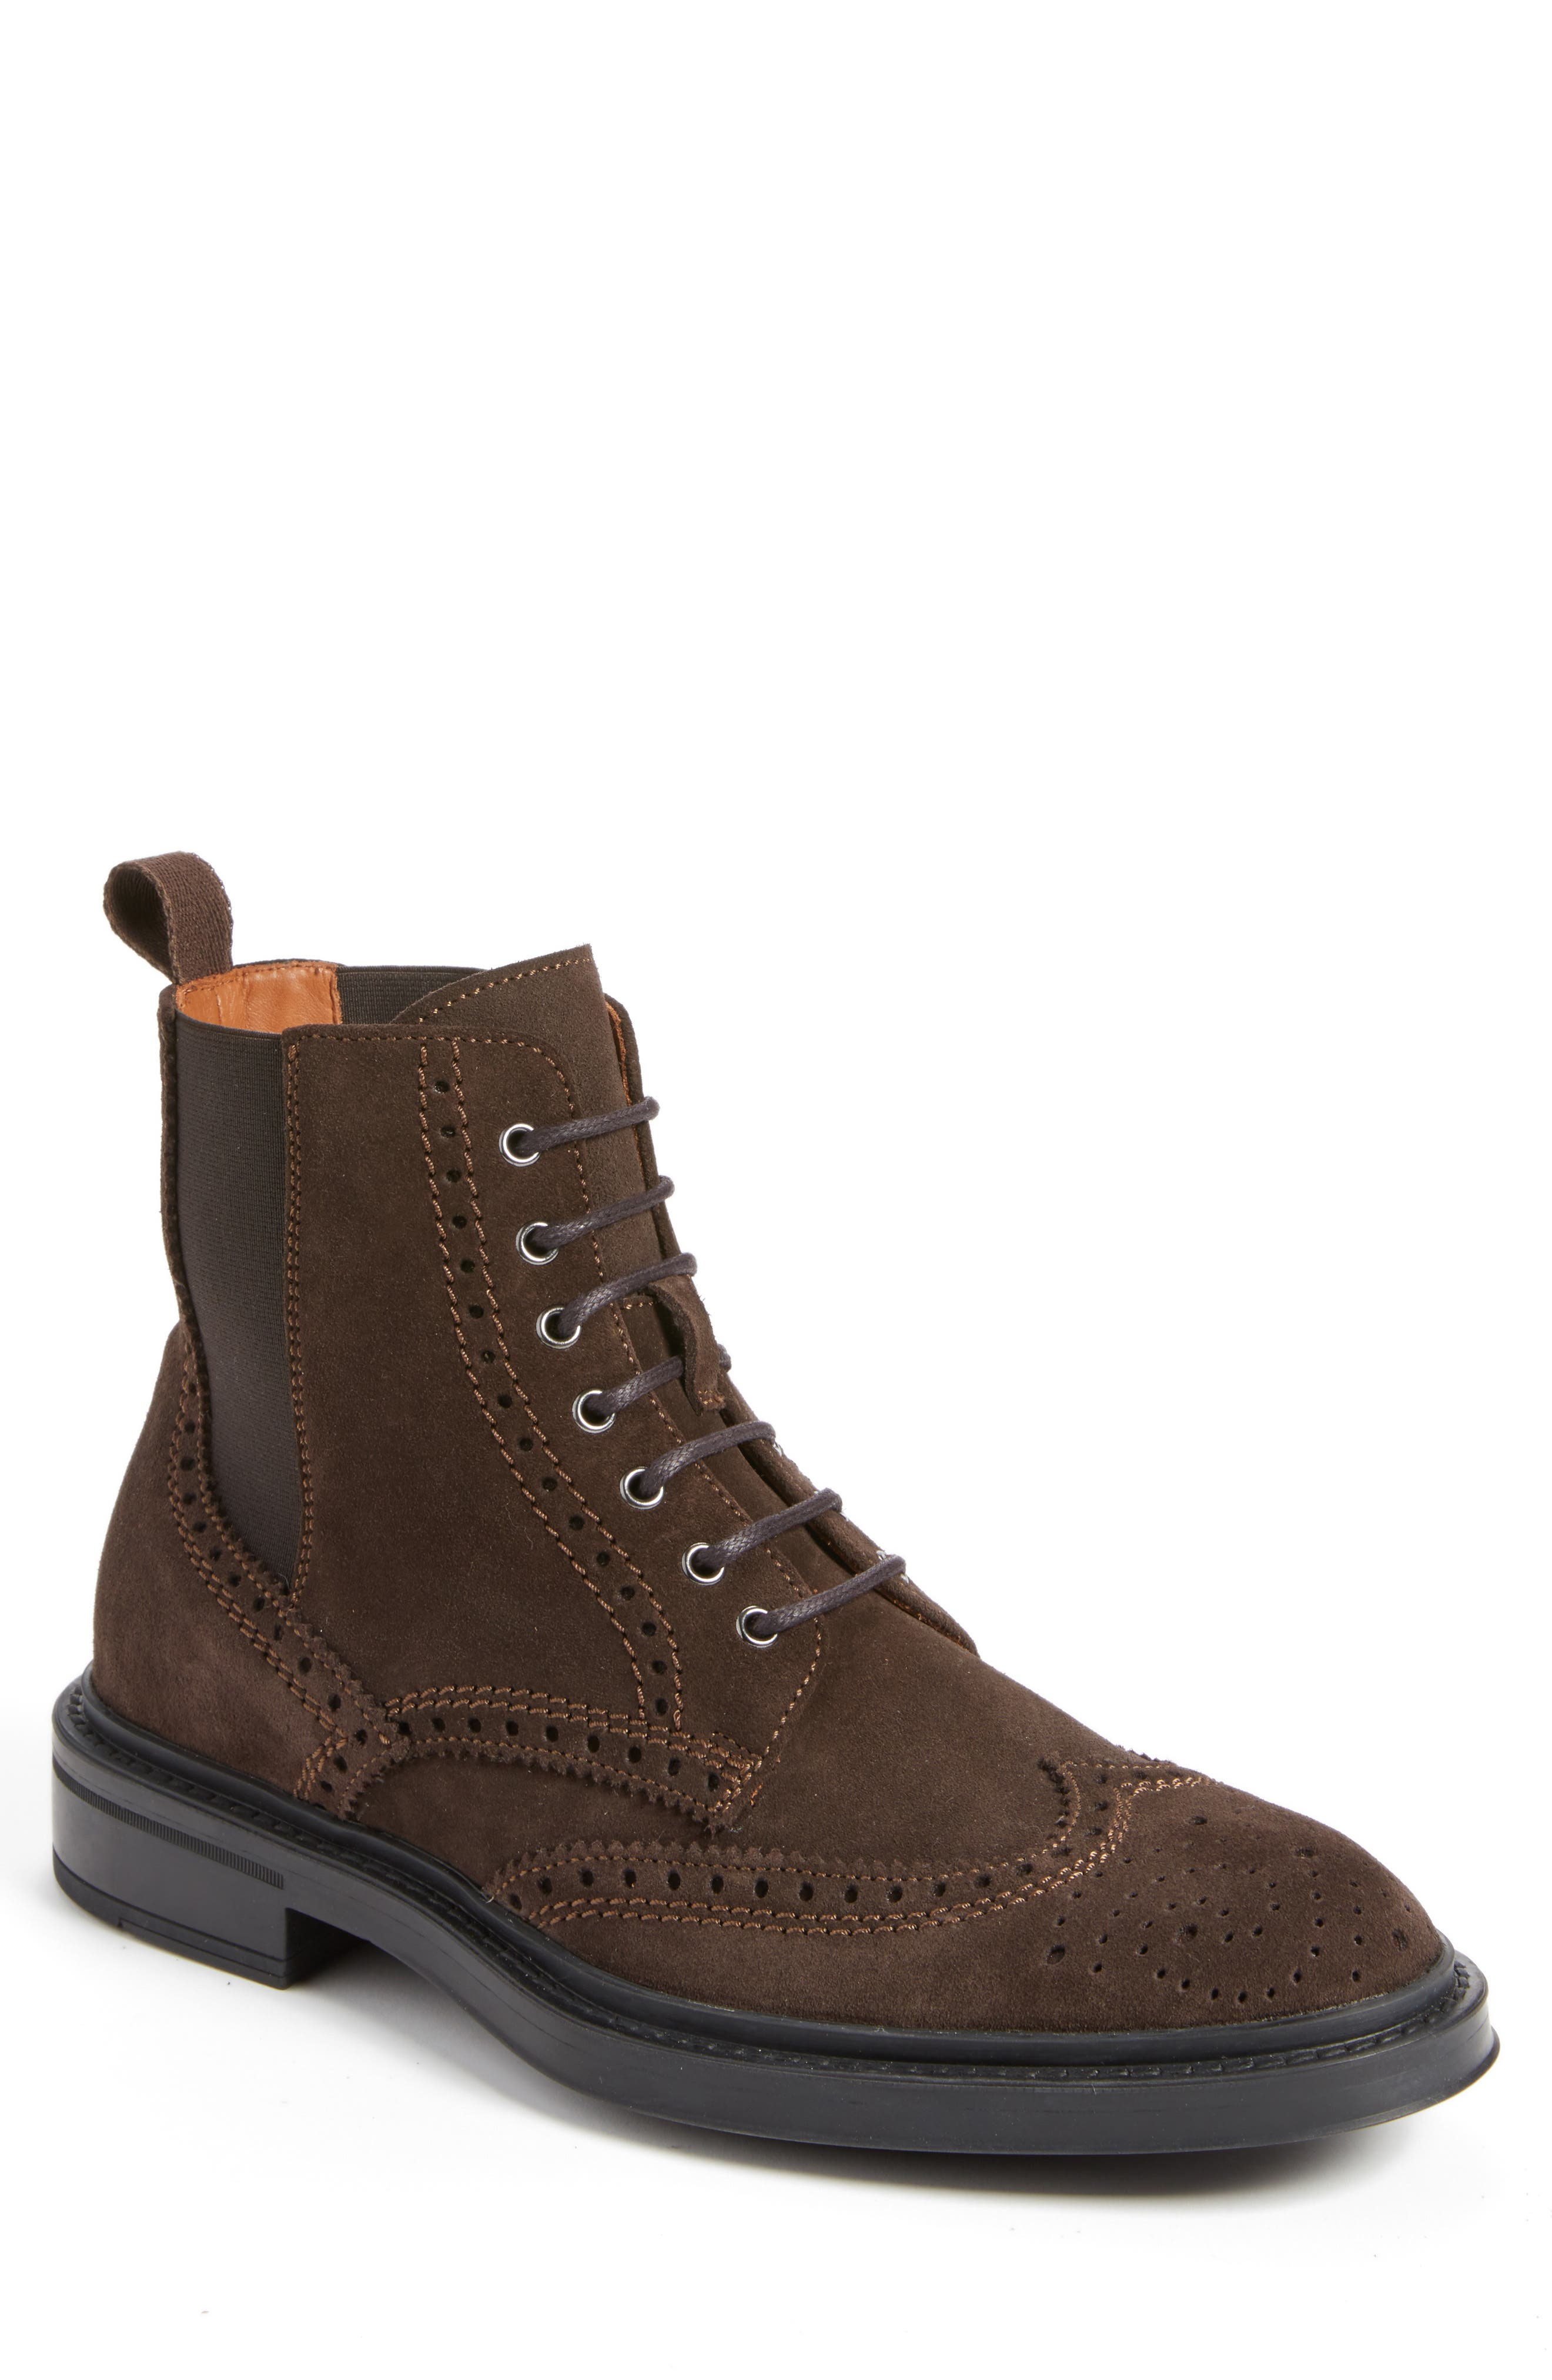 Lawrence Wingtip Boot,                             Main thumbnail 1, color,                             201